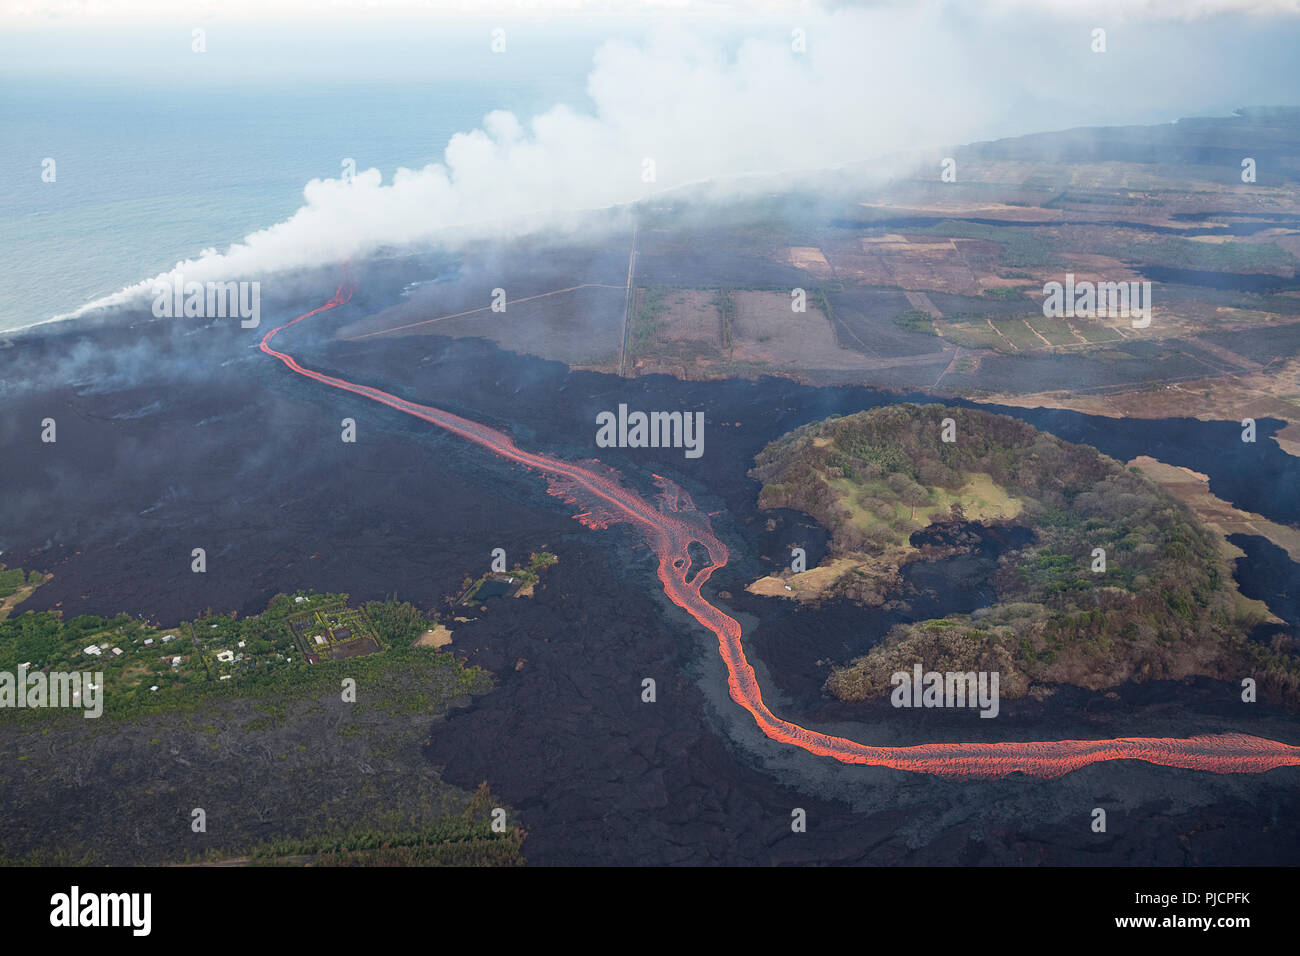 lava erupted from fissure 8 of Hawaii's Kilauea Volcano east rift zone flows as a glowing river around Green Mountain cinder cone to enter the ocean. - Stock Image